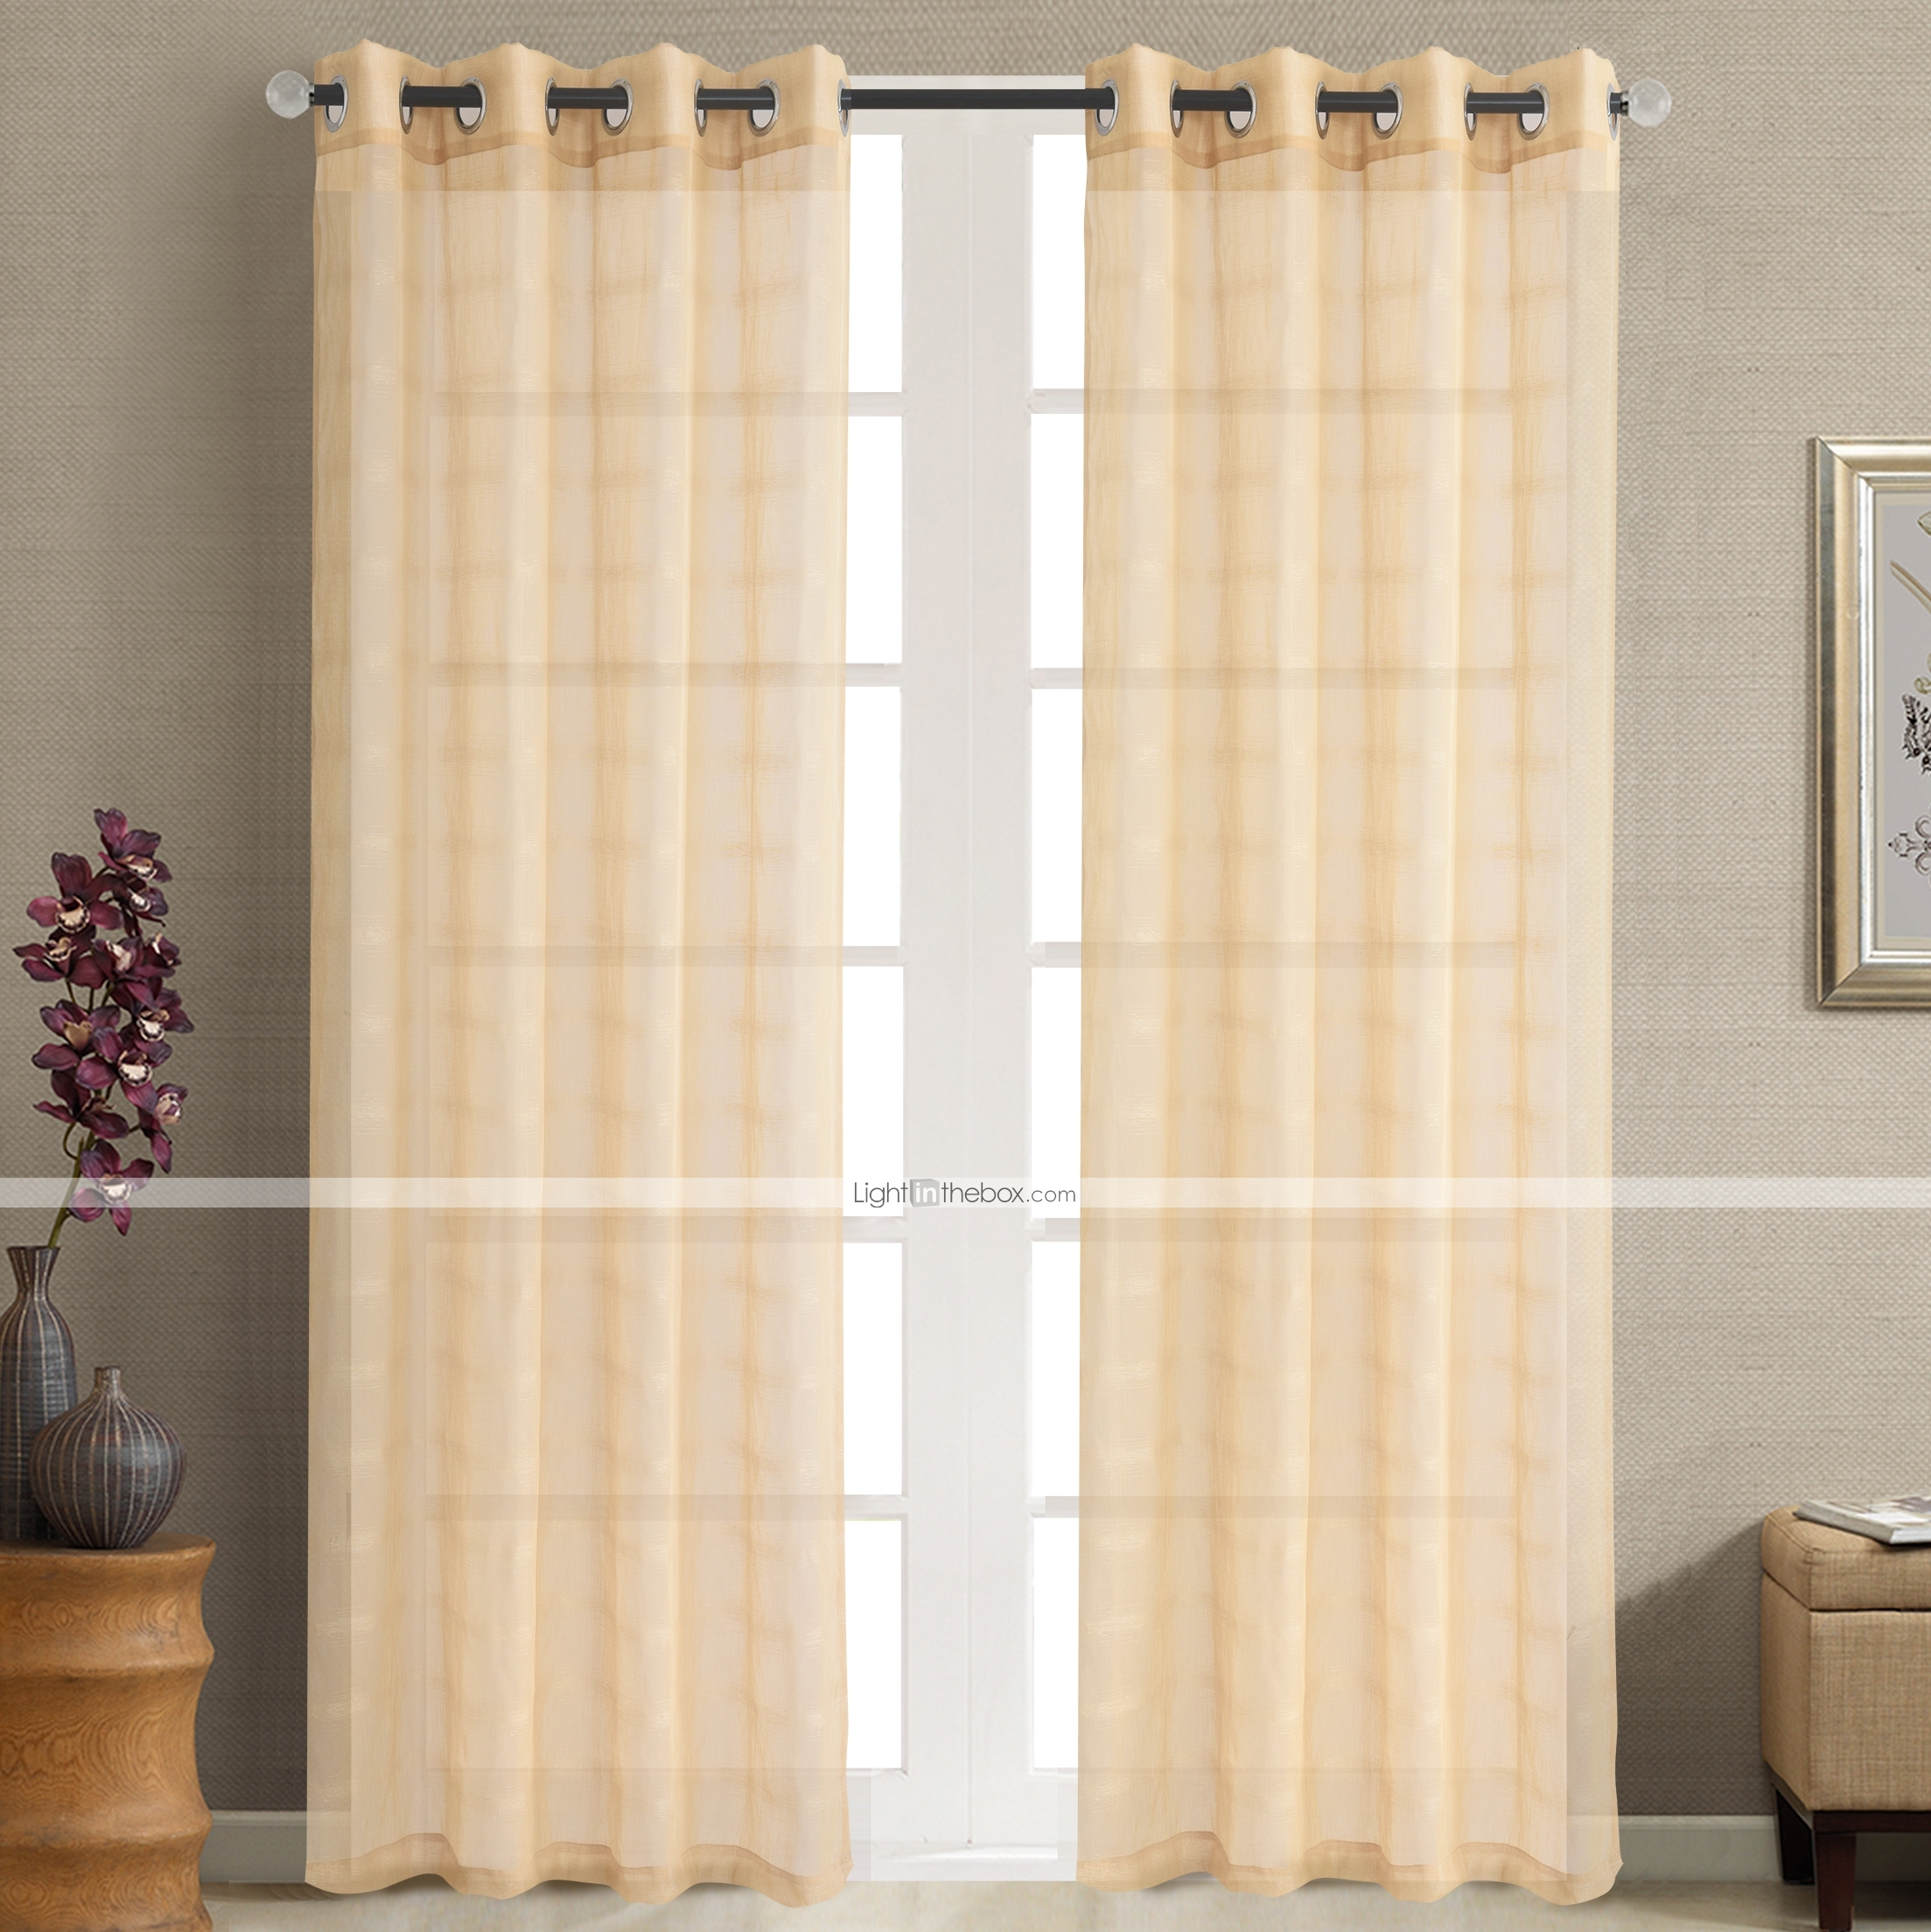 Sheer Curtains Australia Eco Friendly Sheer Curtains Shades Custom Size Gold Jacquard